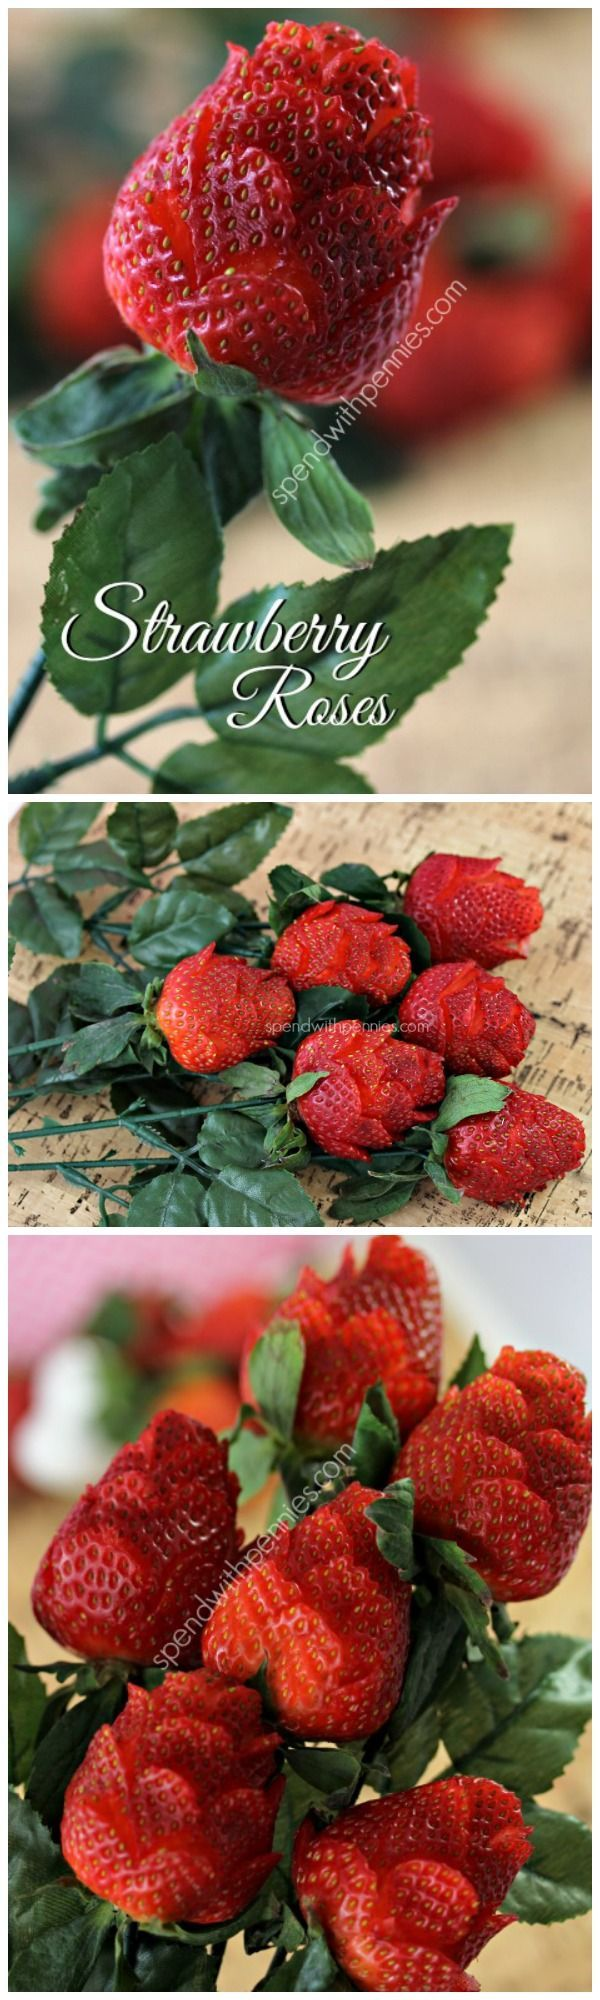 """(link) How To Make a STRAWBERRY ROSES BOUQUET ~ Gorgeous, inexpensive & unbelievably easy to make!  You will need about 2 minutes per """"rose""""… yes, they're that easy! For rose stems, (she) purchased roses at the dollar store. Recommend placing  """"stem"""" into the strawberry before you begin so you don't crush the """"petals"""" once it's done. HINT: Use wooden skewers soaked in water/ green food color, let dry then attach with hot glue a few silk """"rose leaves"""". ~ for more great PINs visit @djohnisee"""